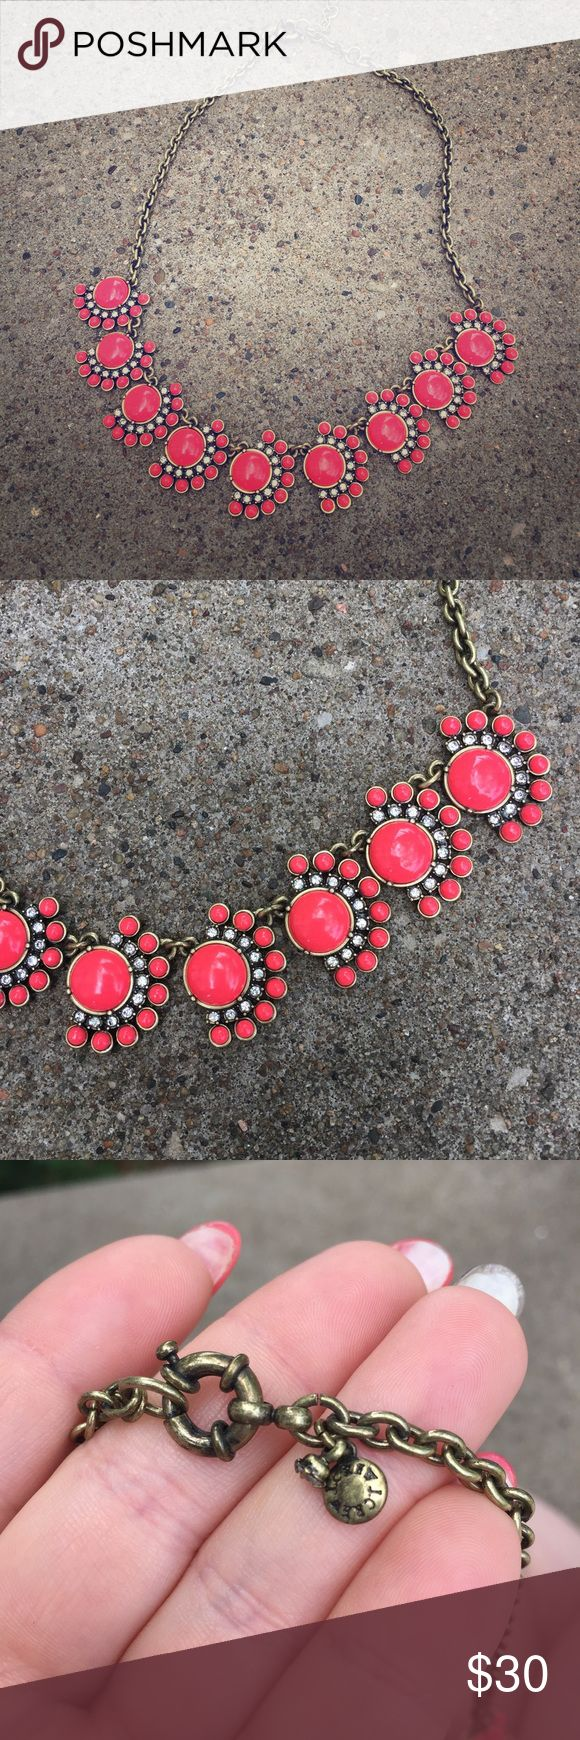 J Crew Coral Pink Statement Necklace Not quite a true coral but also not true pink, somewhere in between. Perfect condition and gorgeous! Authentic J Crew. J. Crew Jewelry Necklaces